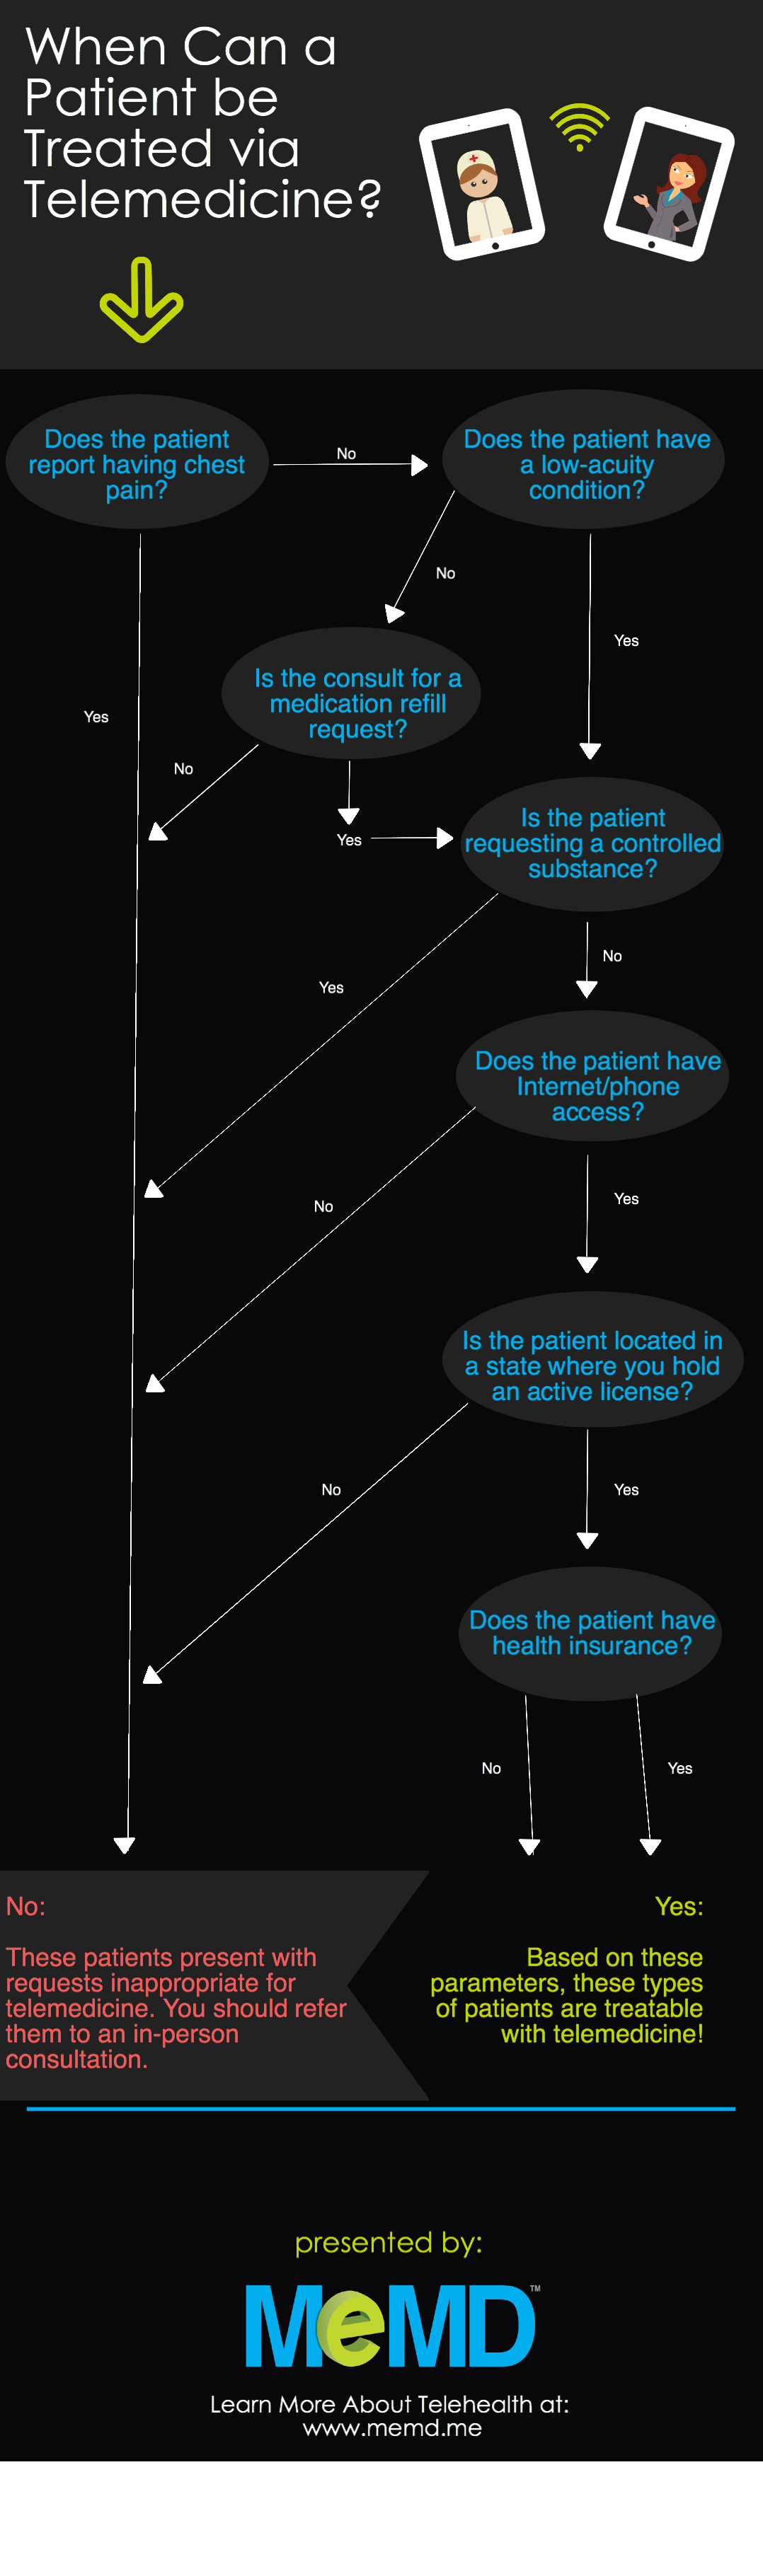 Can I Treat this Patient via Telemedicine?[Infographic] - MeMD